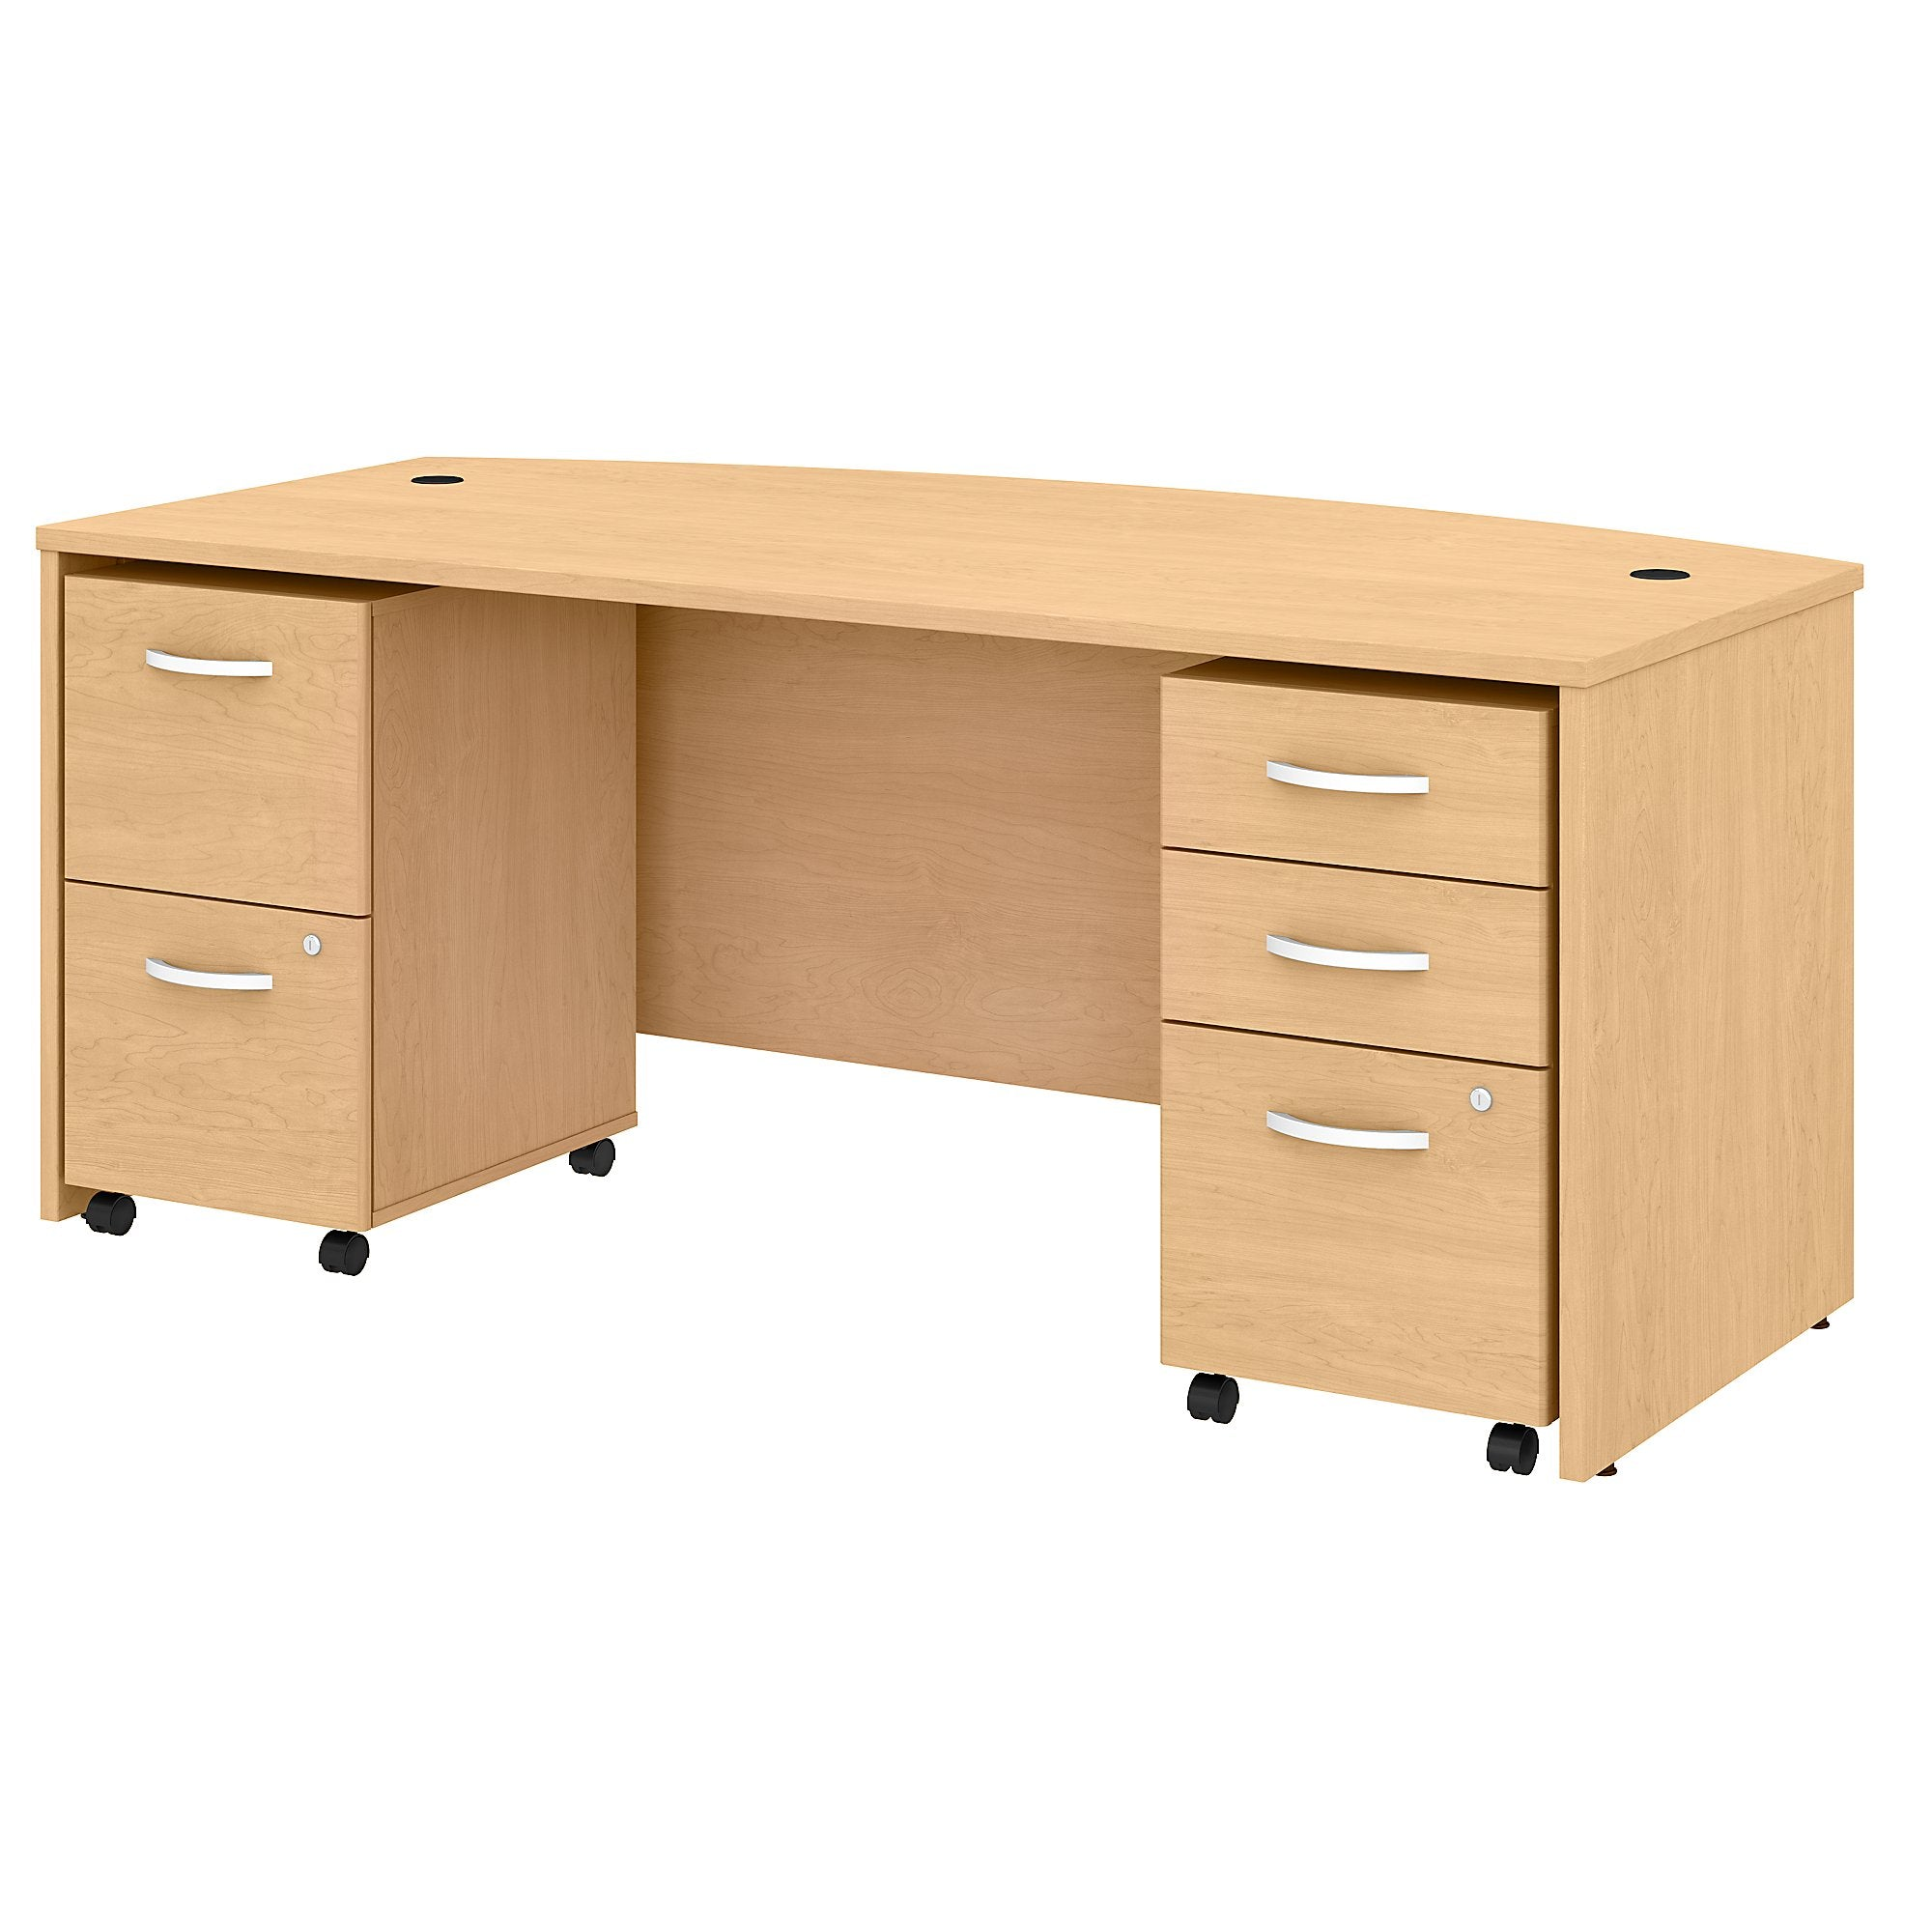 Studio C 72W x 36D Bow Front Desk with Mobile File Cabinets